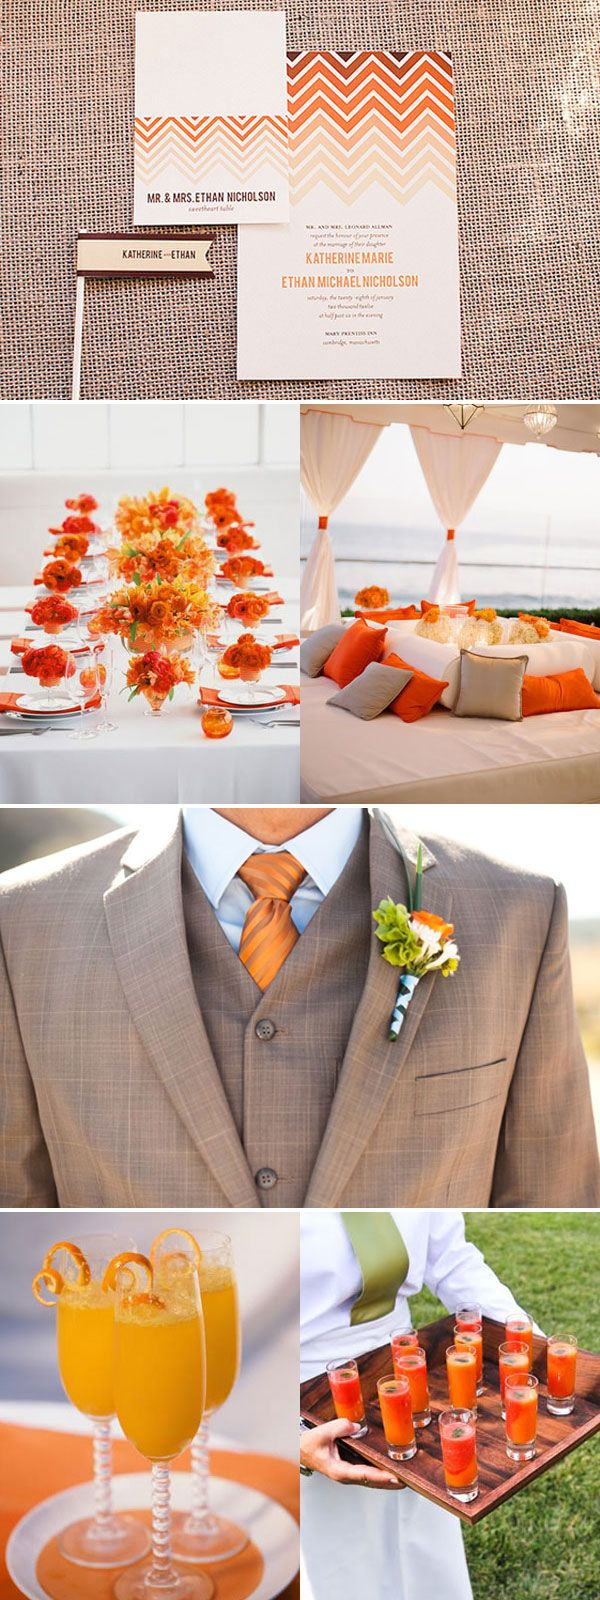 Wedding Color Schemes from Loverly   Wedding Planning, Ideas & Etiquette   Bridal Guide Magazine